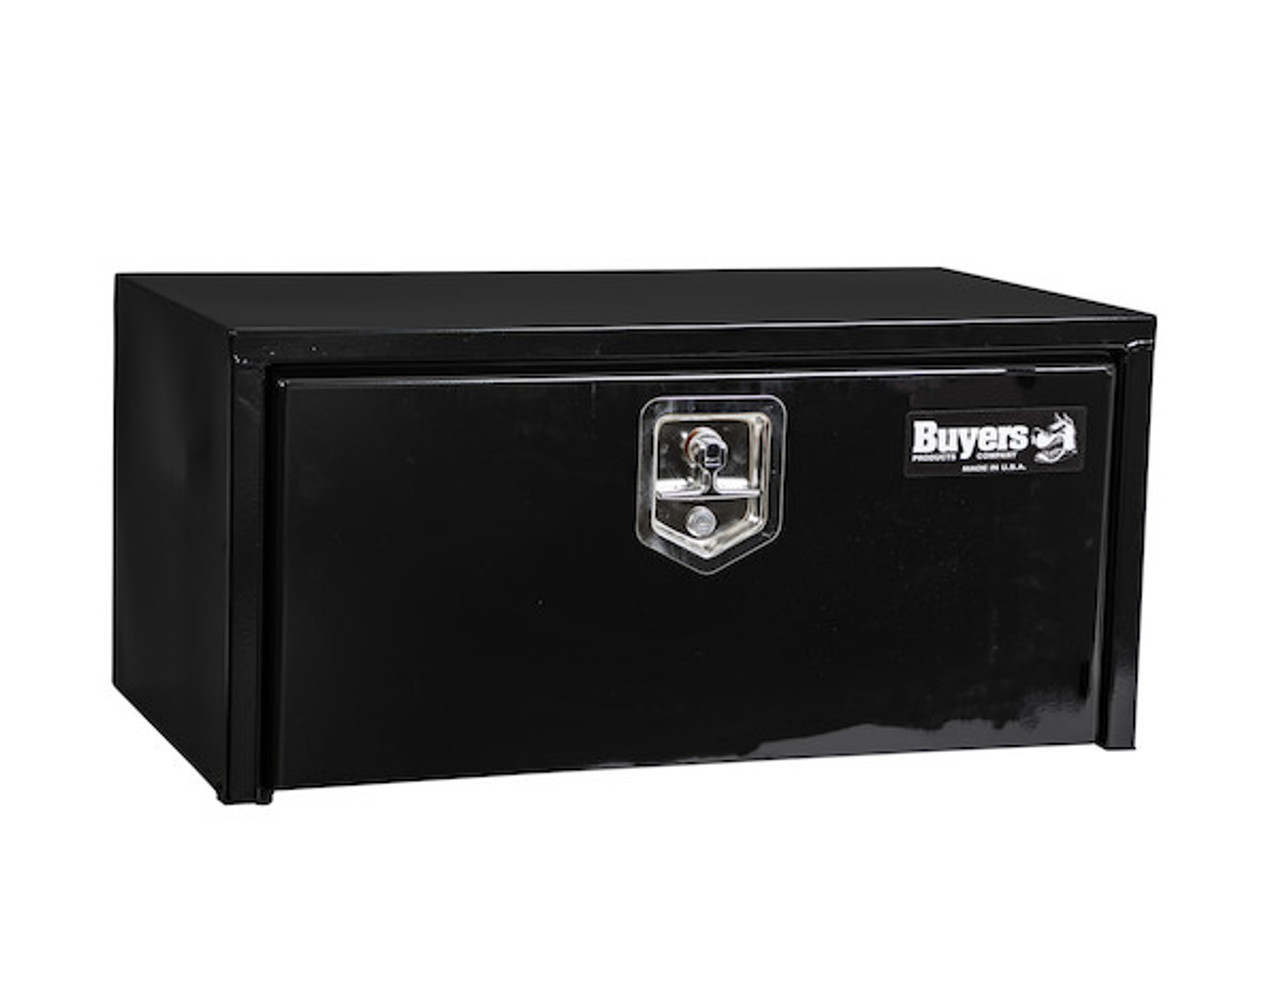 """1703304 BUYERS PRODUCTS BLACK STEEL UNDERBODY TRUCK TOOL BOX WITH BUILT-IN SHELF 14""""HX16""""DX30""""W Picture # 7"""